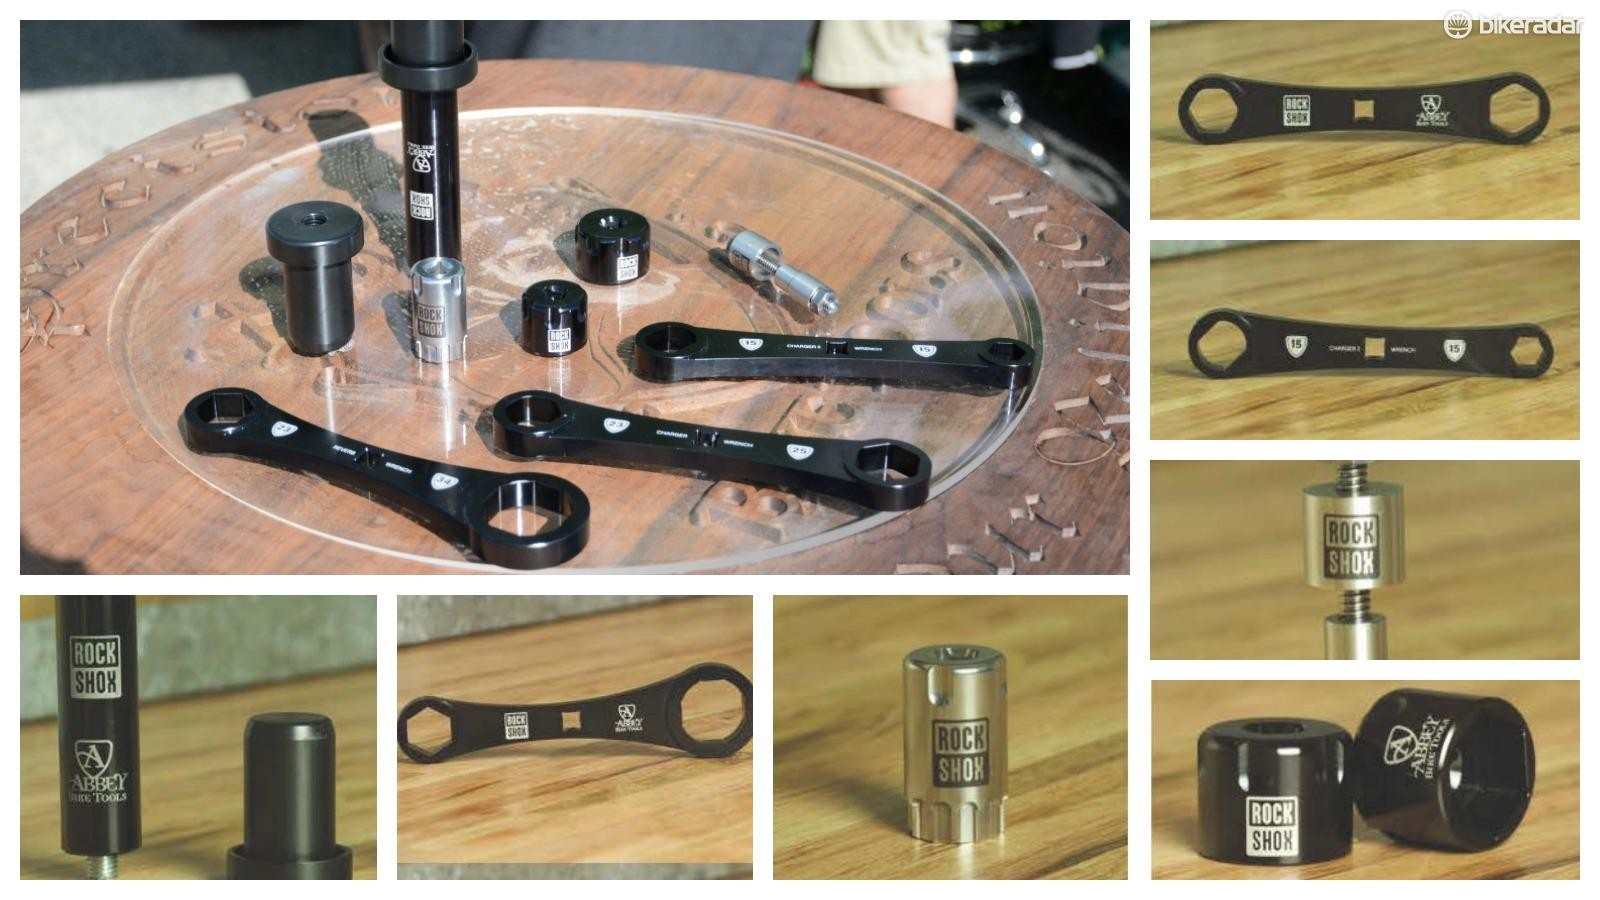 Love tools and ride RockShox suspension? Abbey Bike Tools has collaborated with RockShox to create some very nice kit